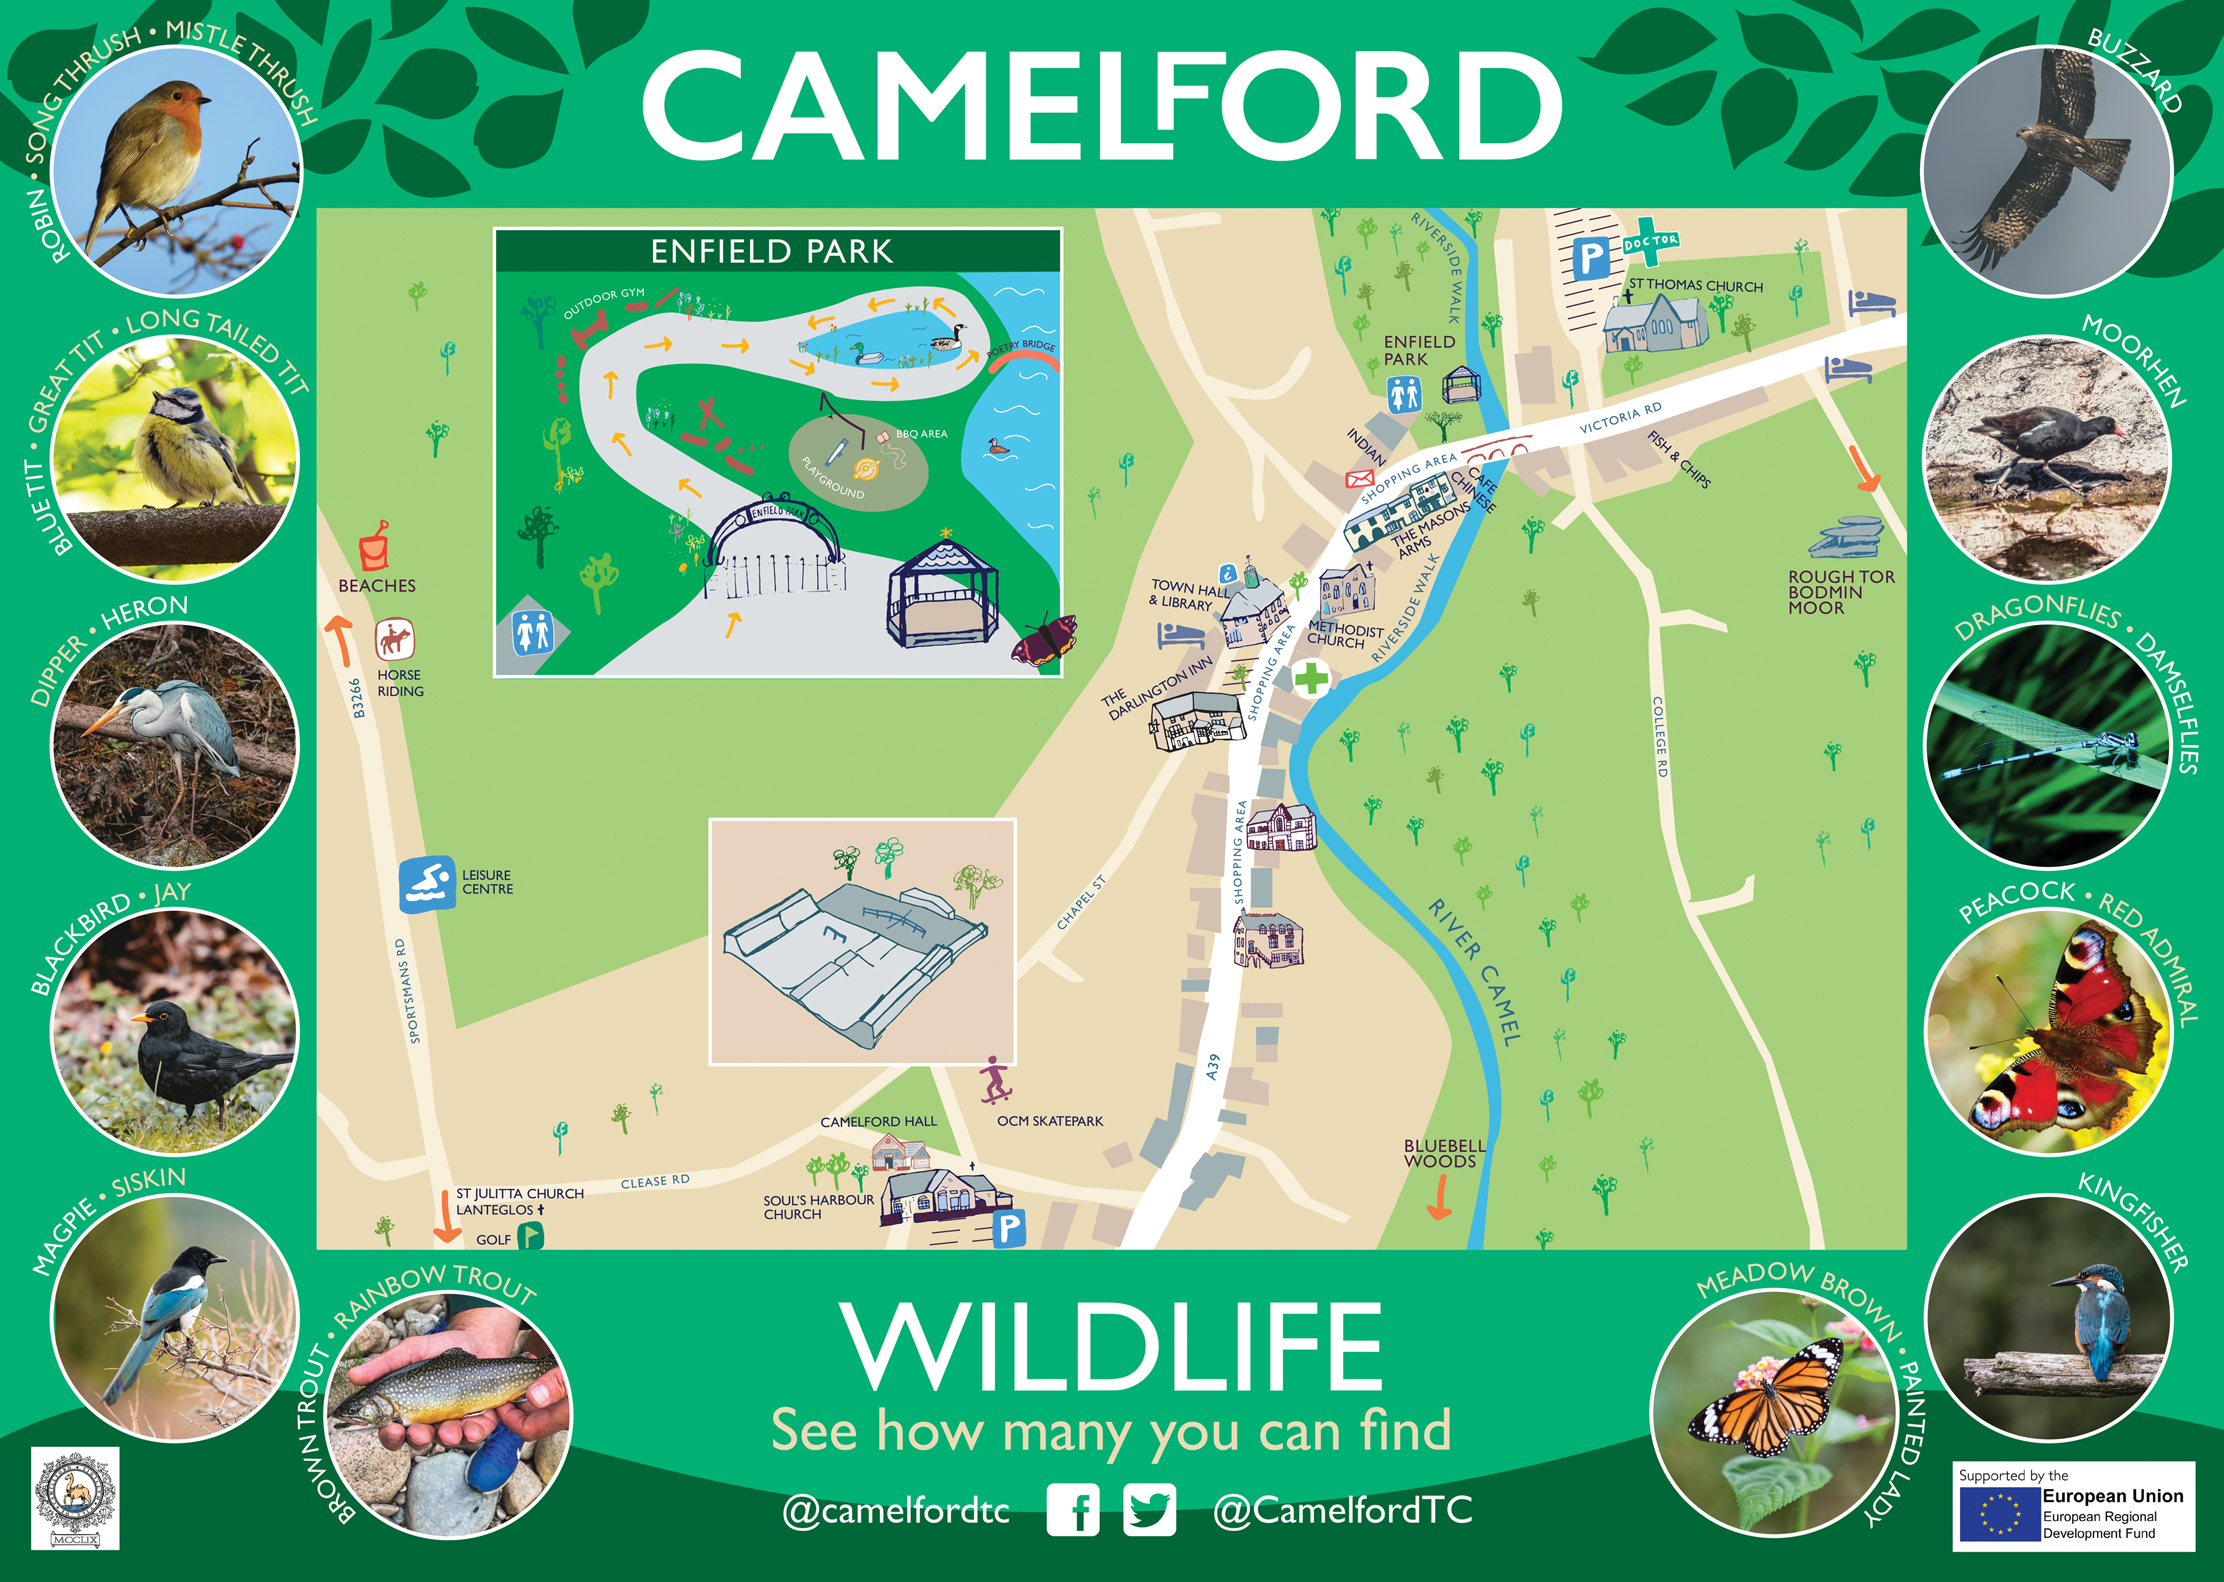 Illustrated town map with wildlife photos for Camelford